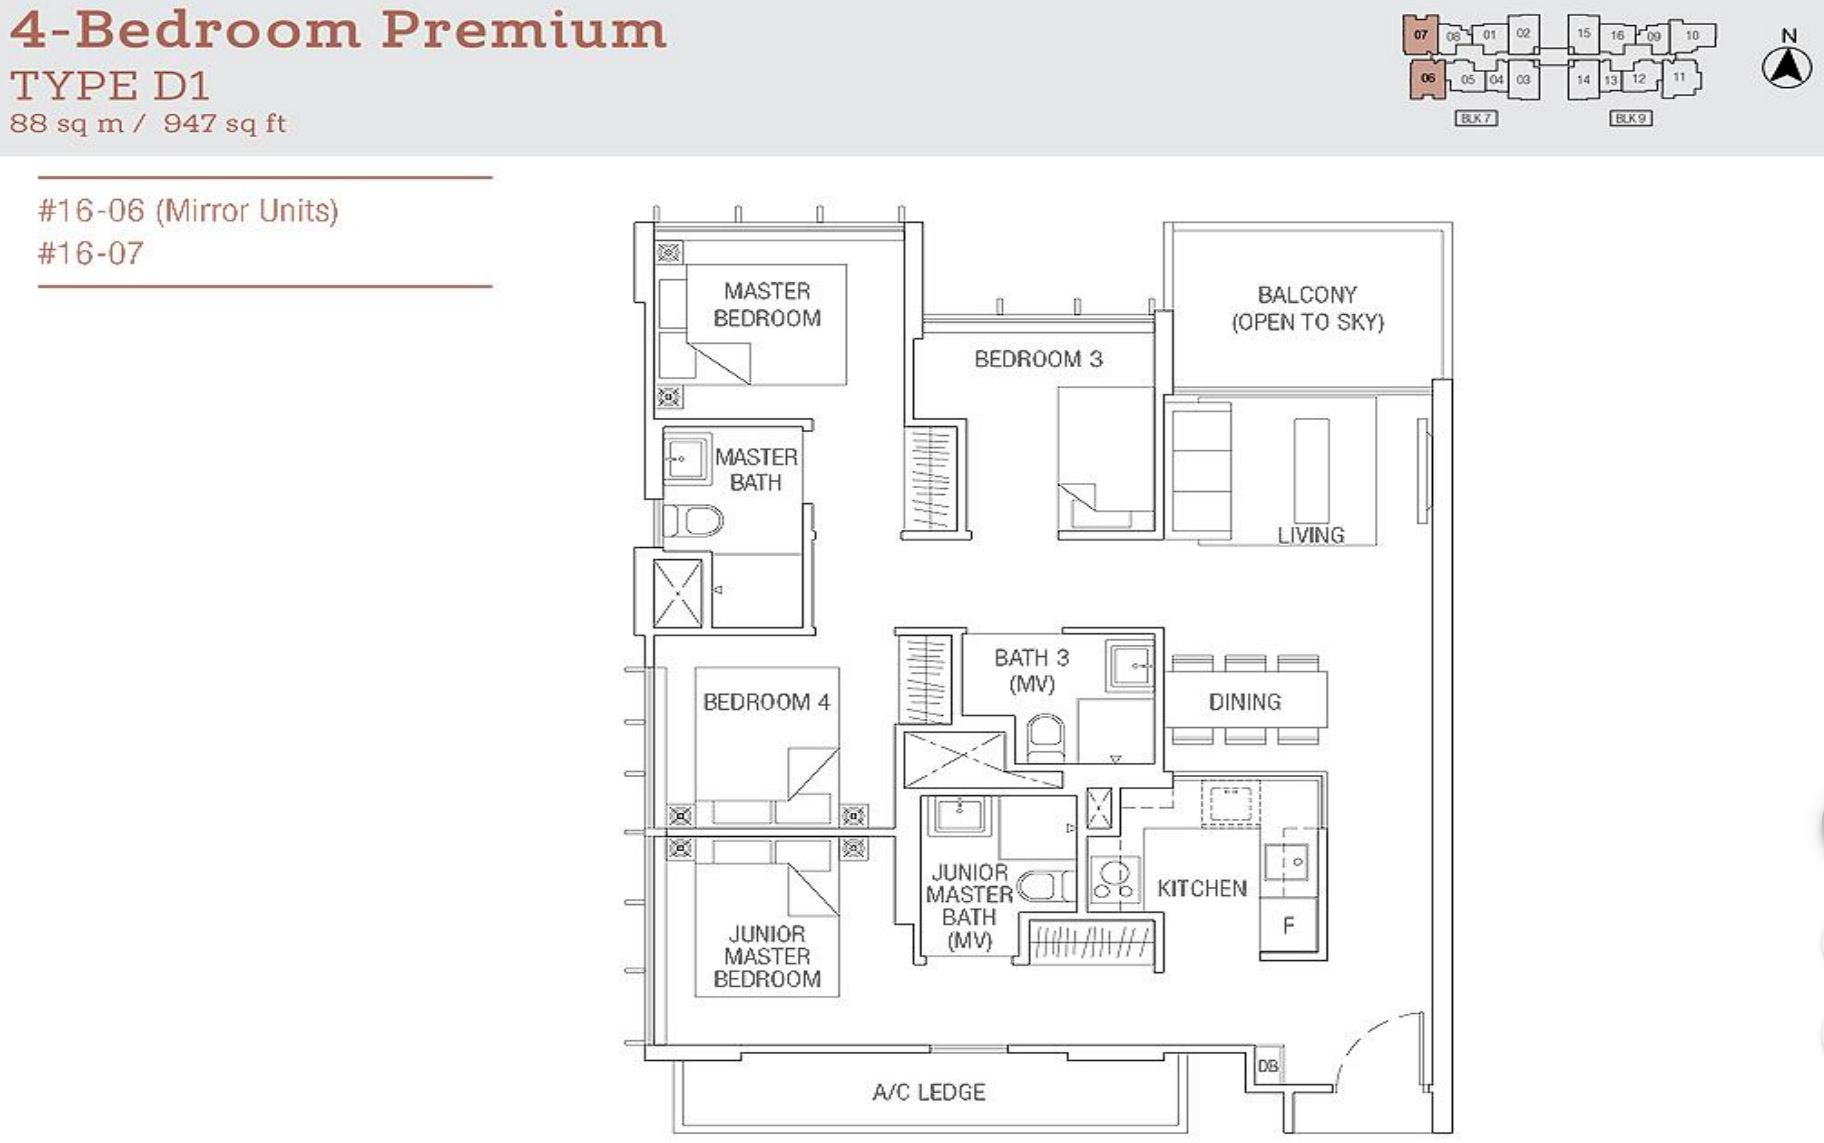 Tre Residences FloorPlan - 4 Bedroom Premium Type D1_2